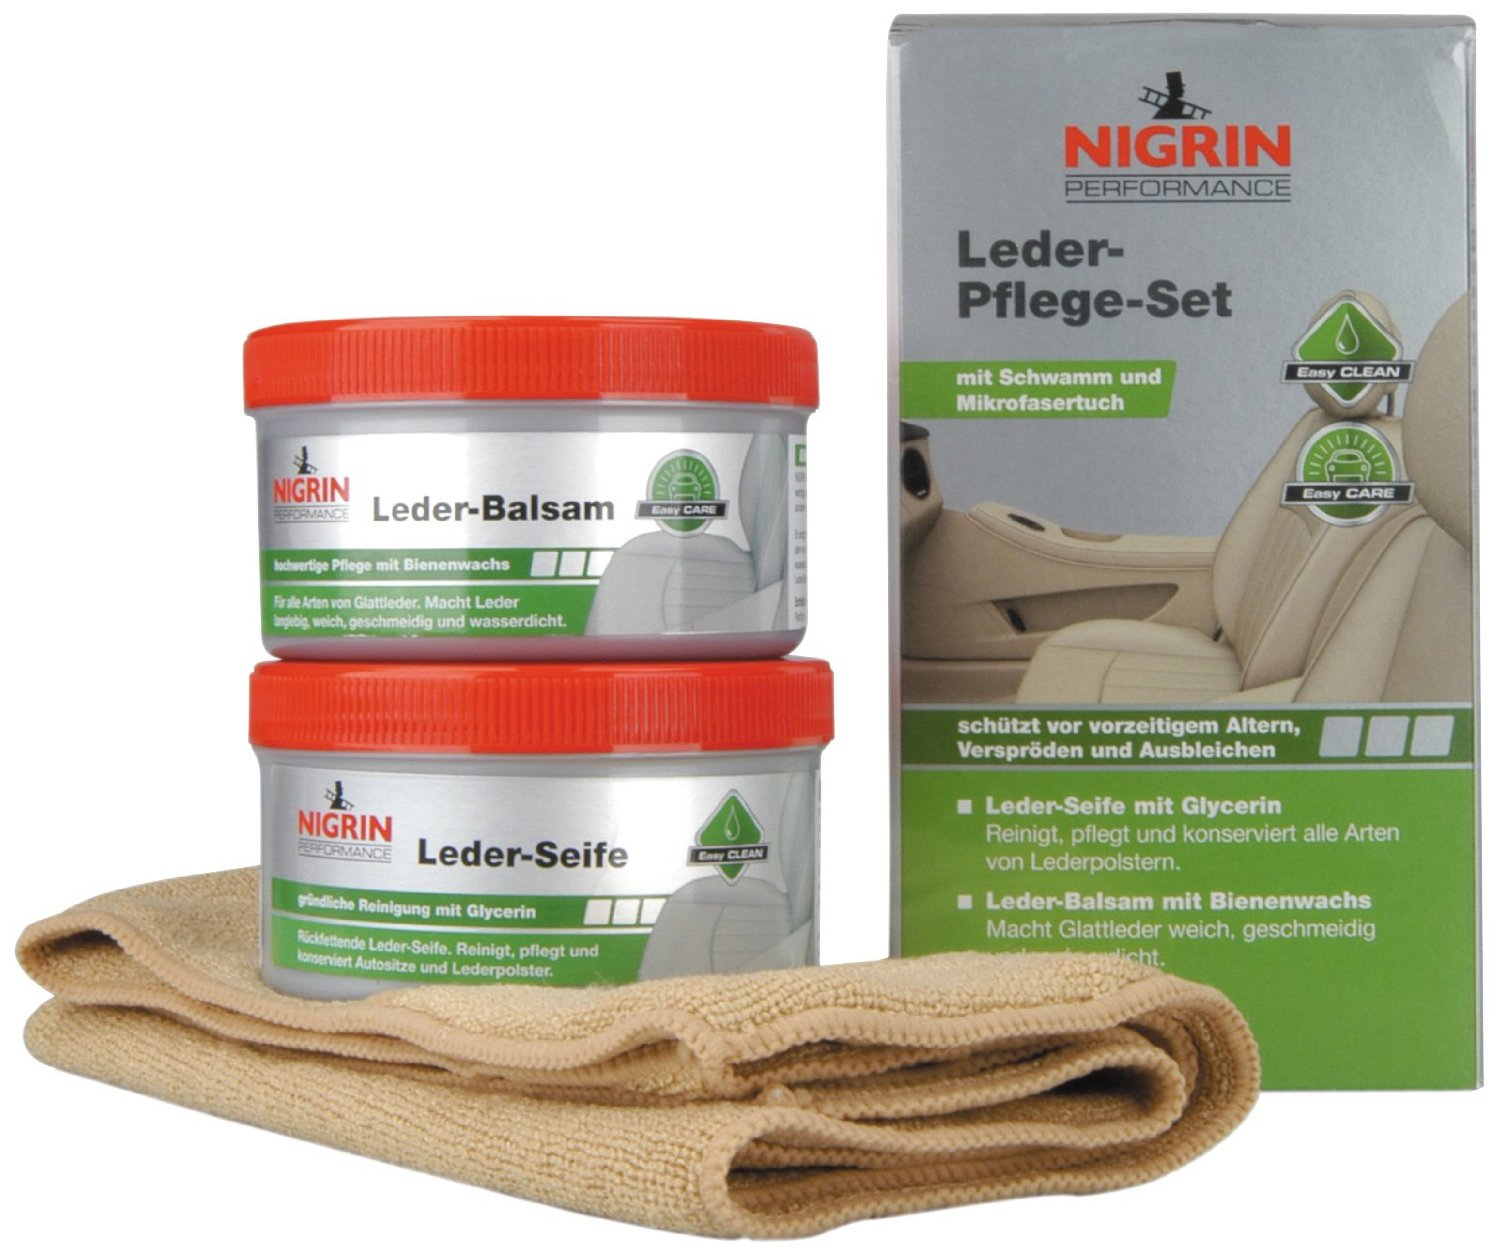 Nigrin 73170 Performance Leder-Pflege-Set Test